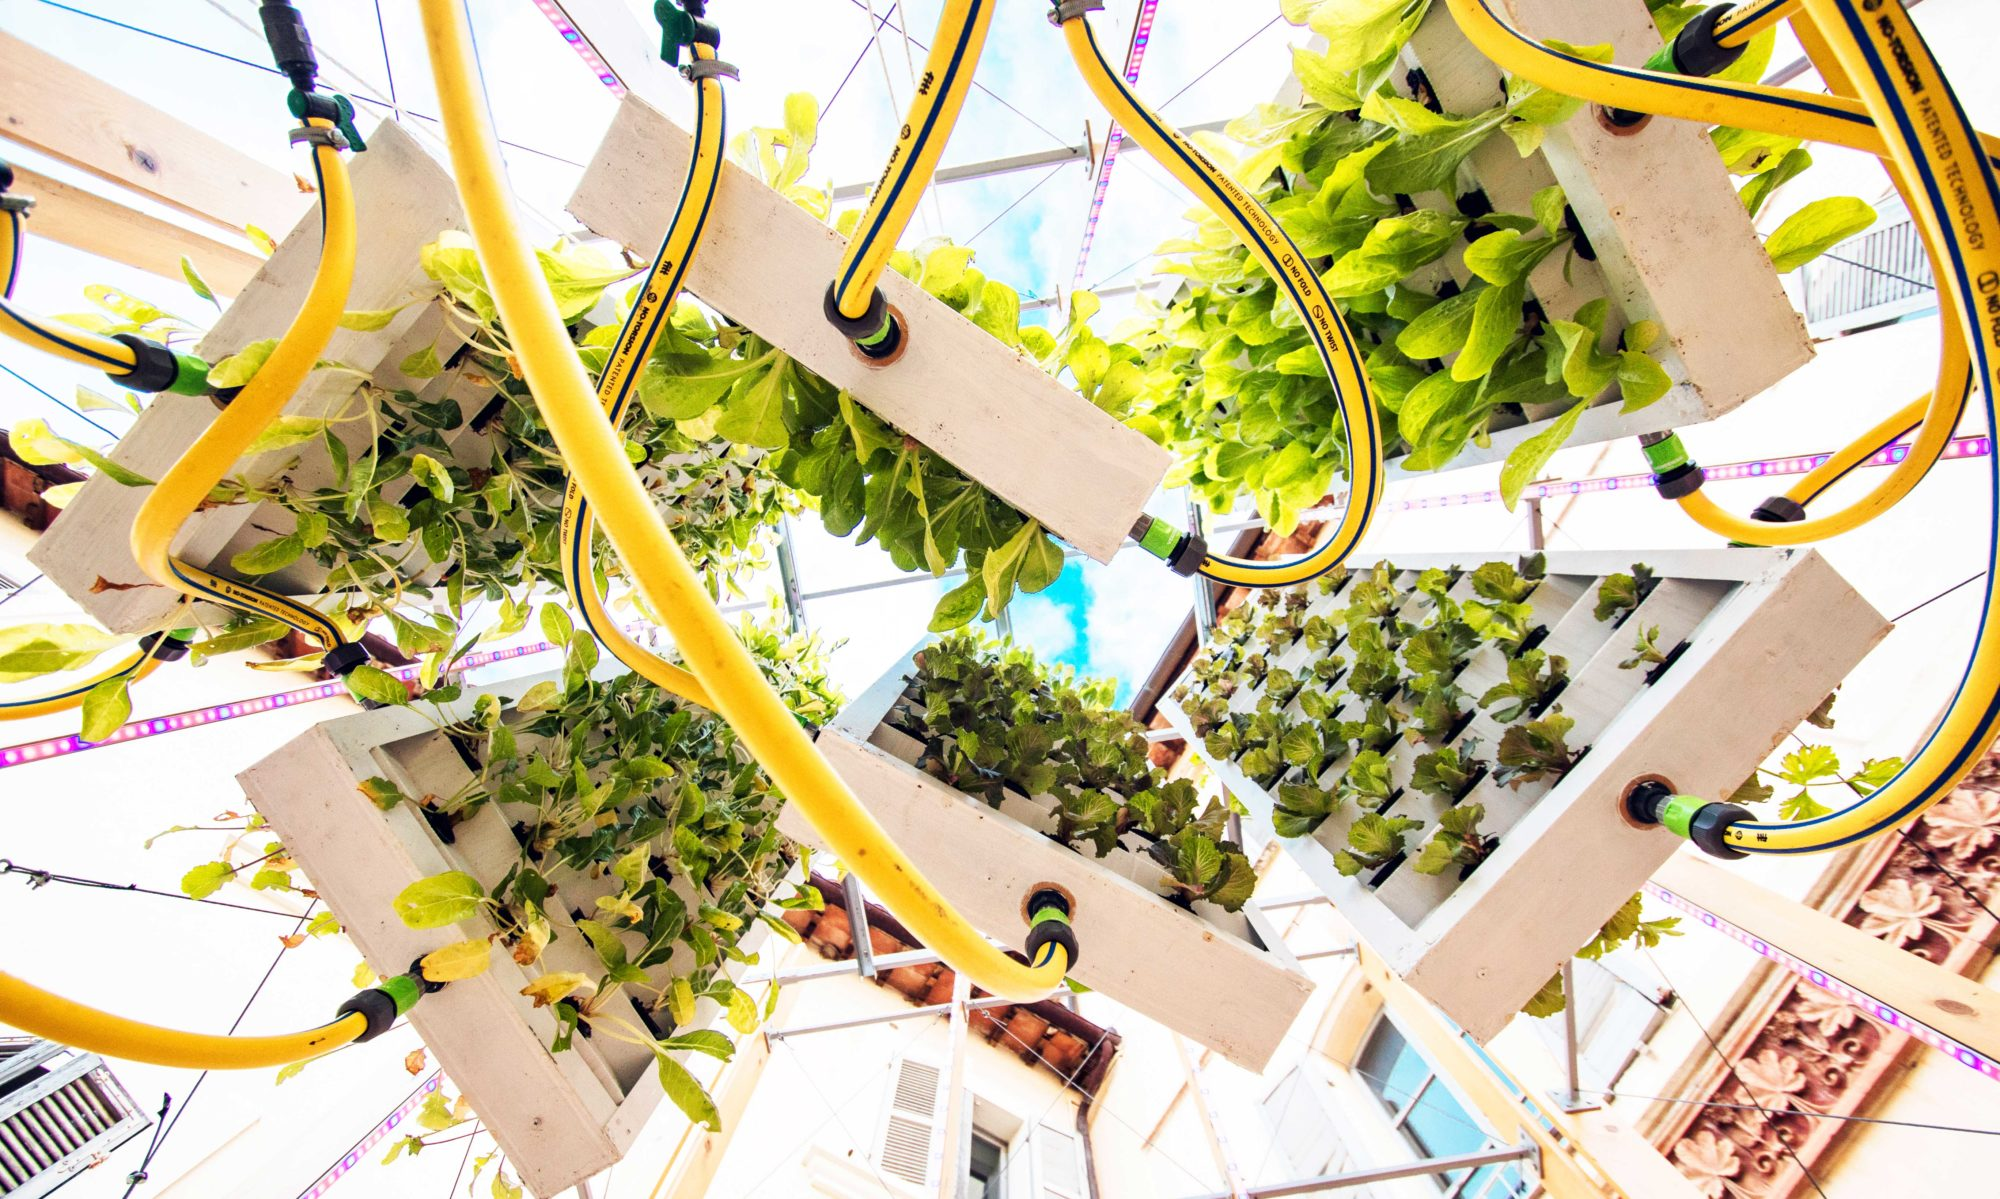 Vertical Farm Italia